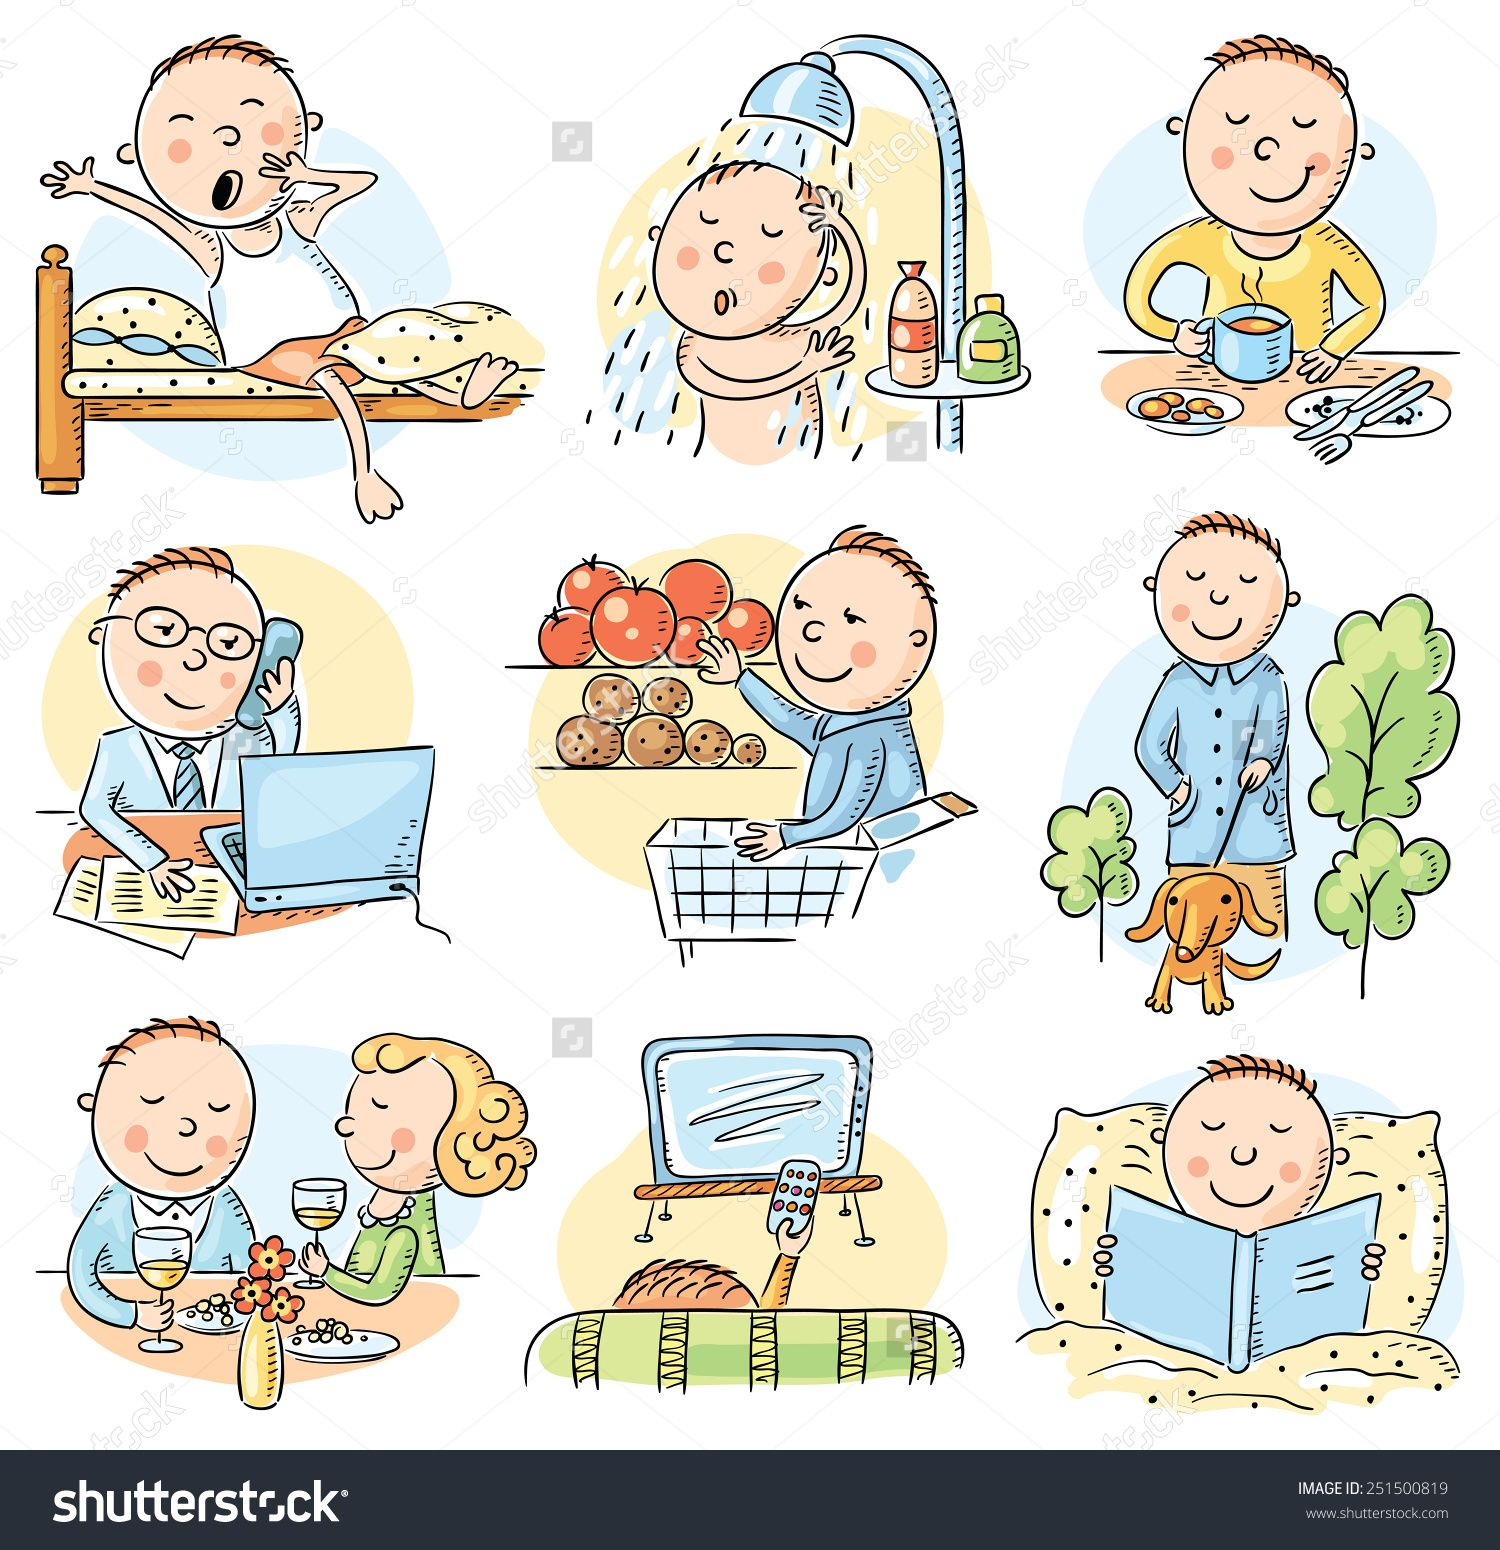 Day regimen of a child at 1 year old: features of the daily routine, food, sleep, play and walks of a one-year-old baby 24